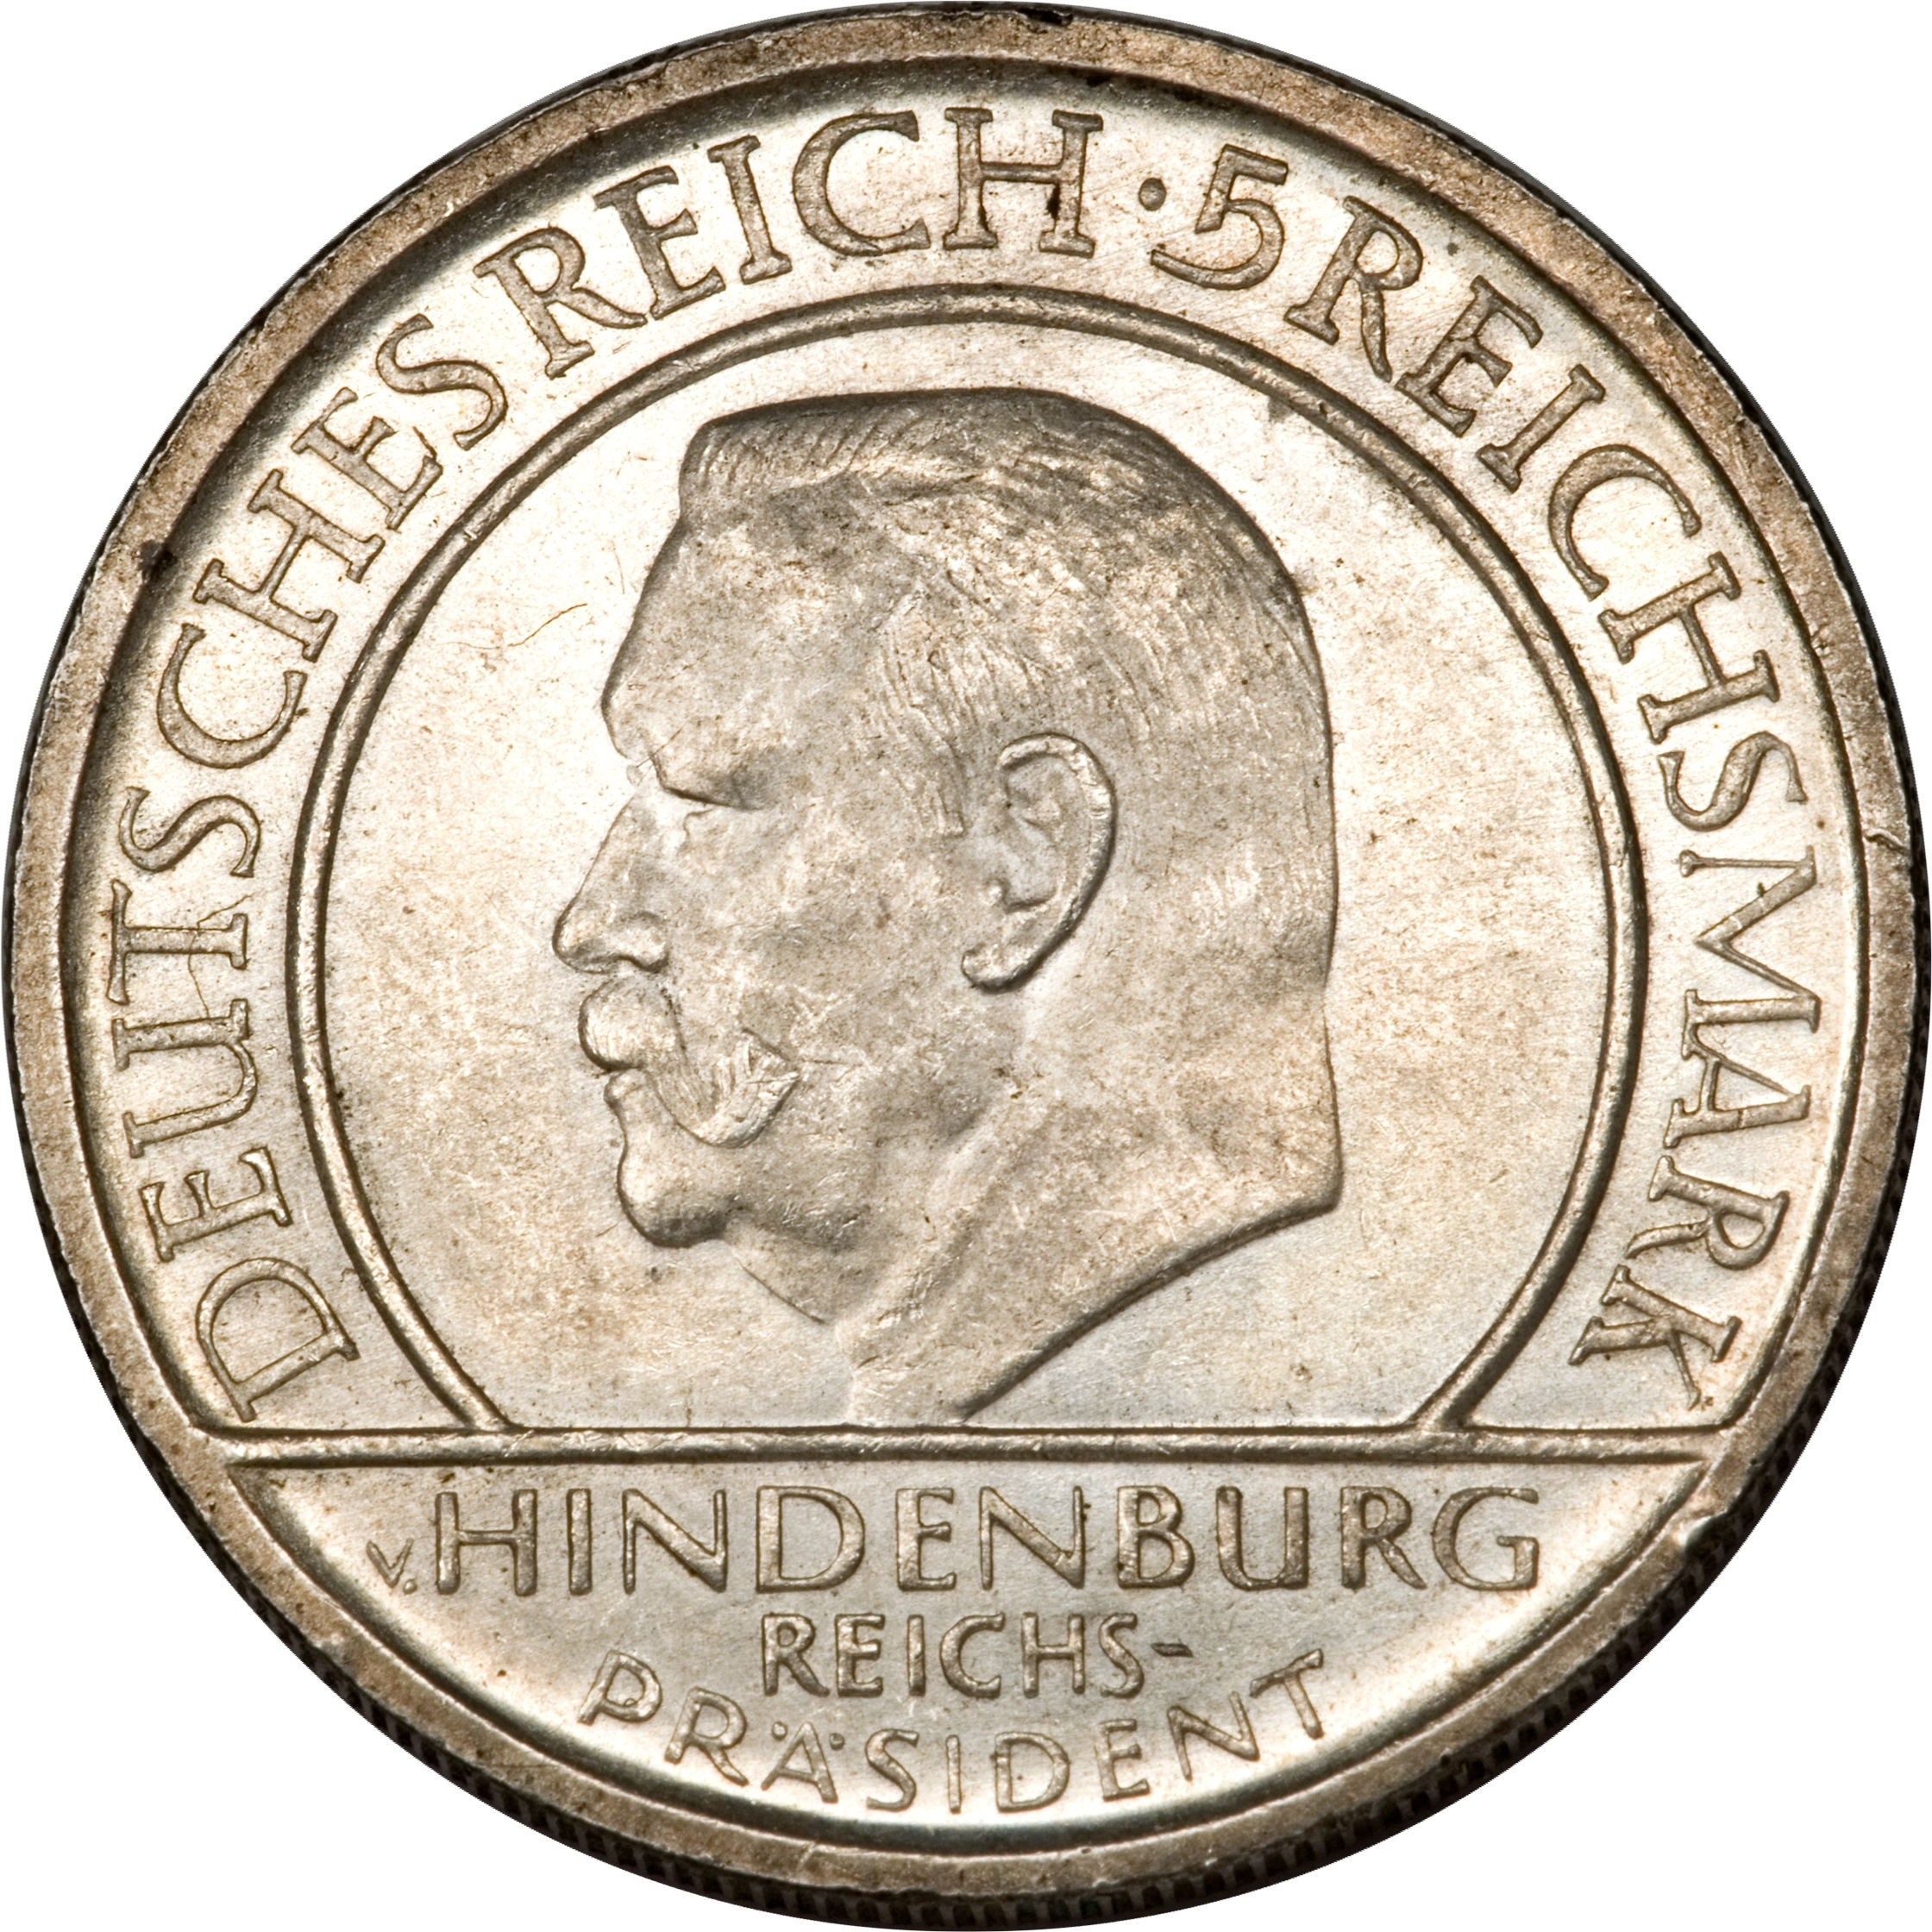 Germany 5 Reichsmark (1929 Weimar Constitution)